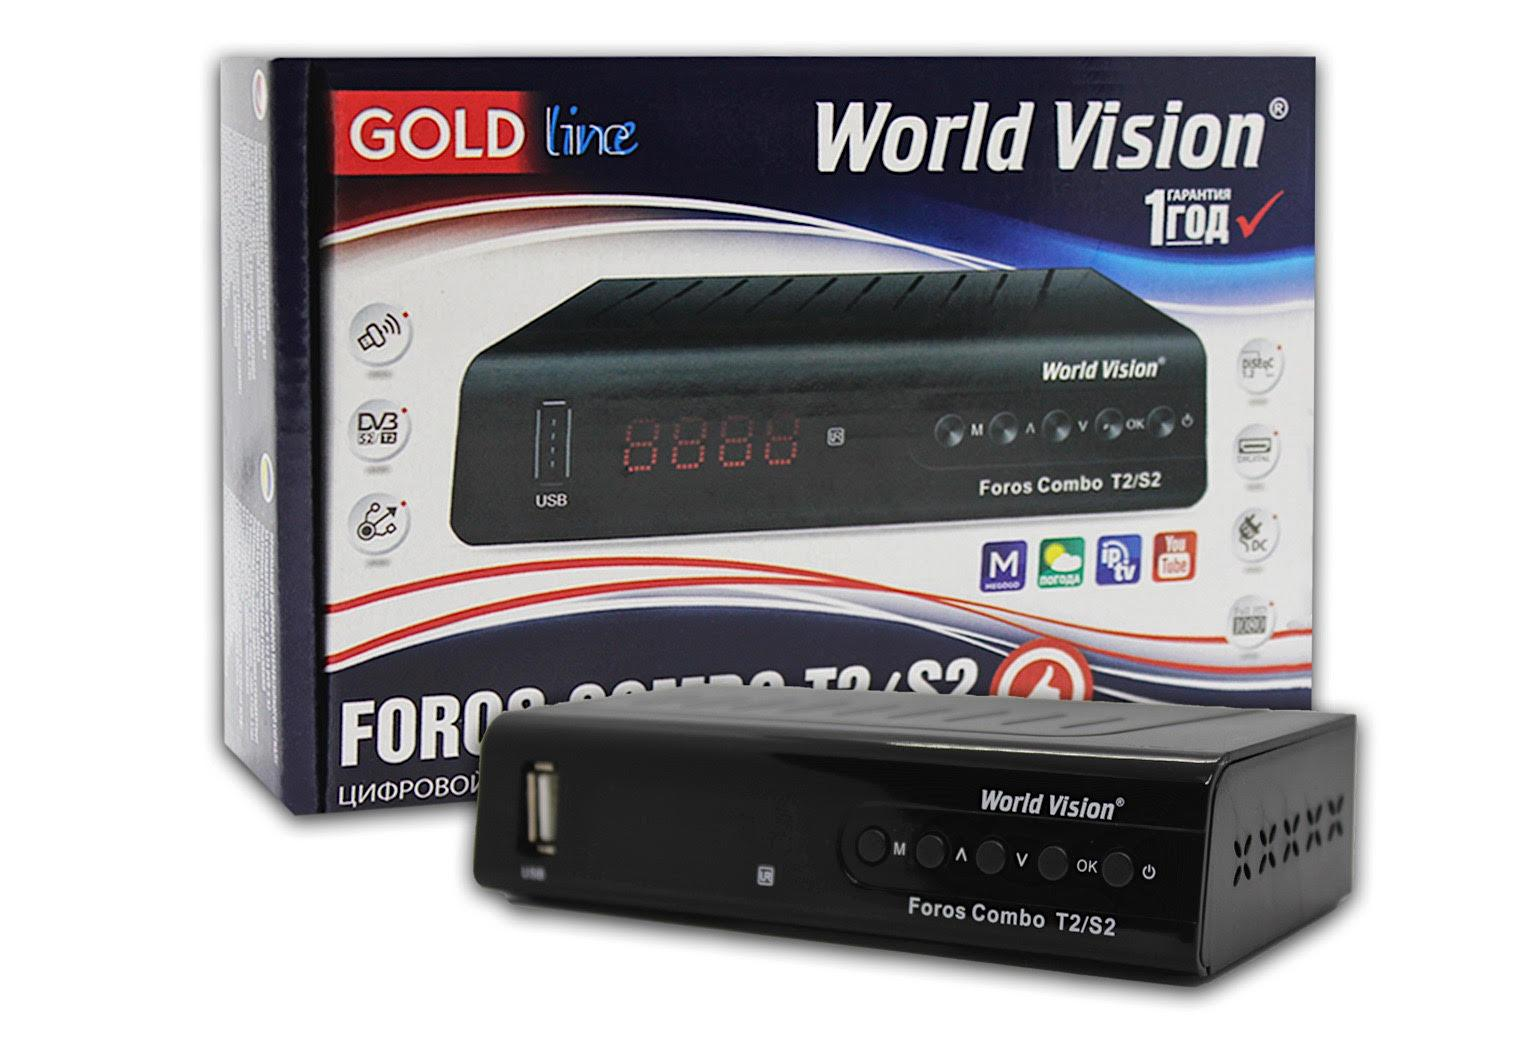 World Vision Foros Combo T2/S2